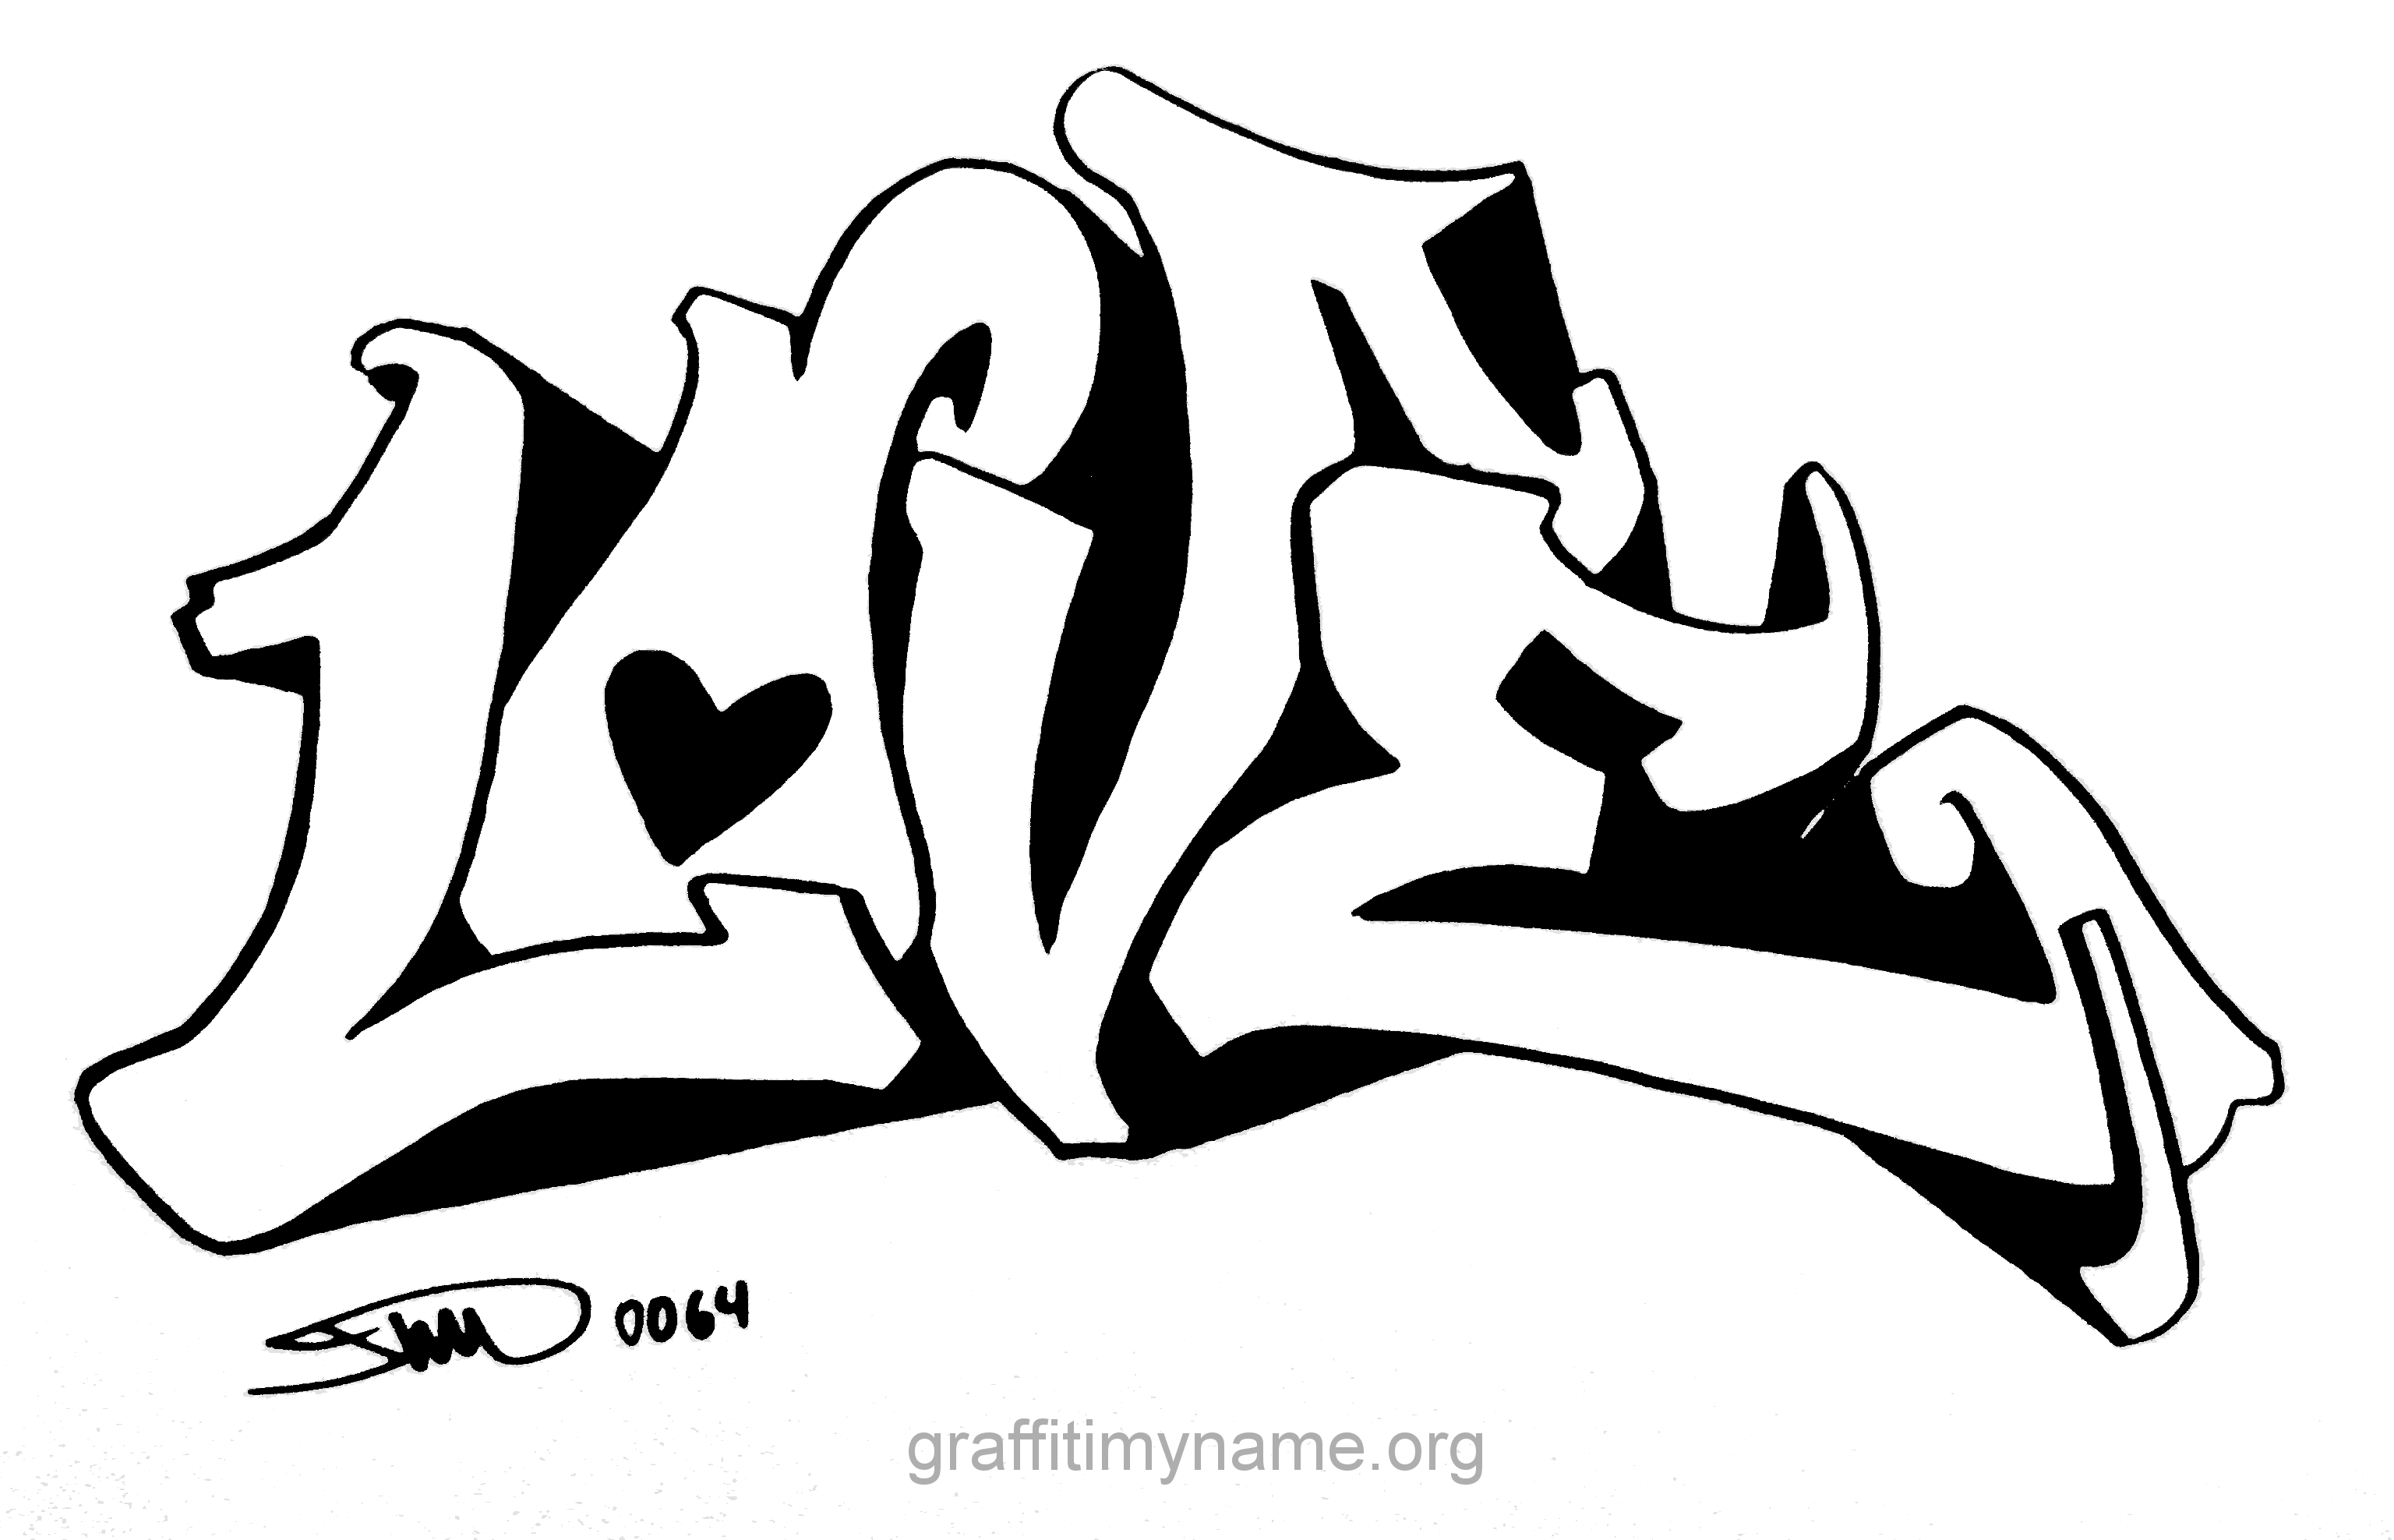 graffiti word coloring pages | Home / Graffiti My Name / Your Name ... | 1976x3072